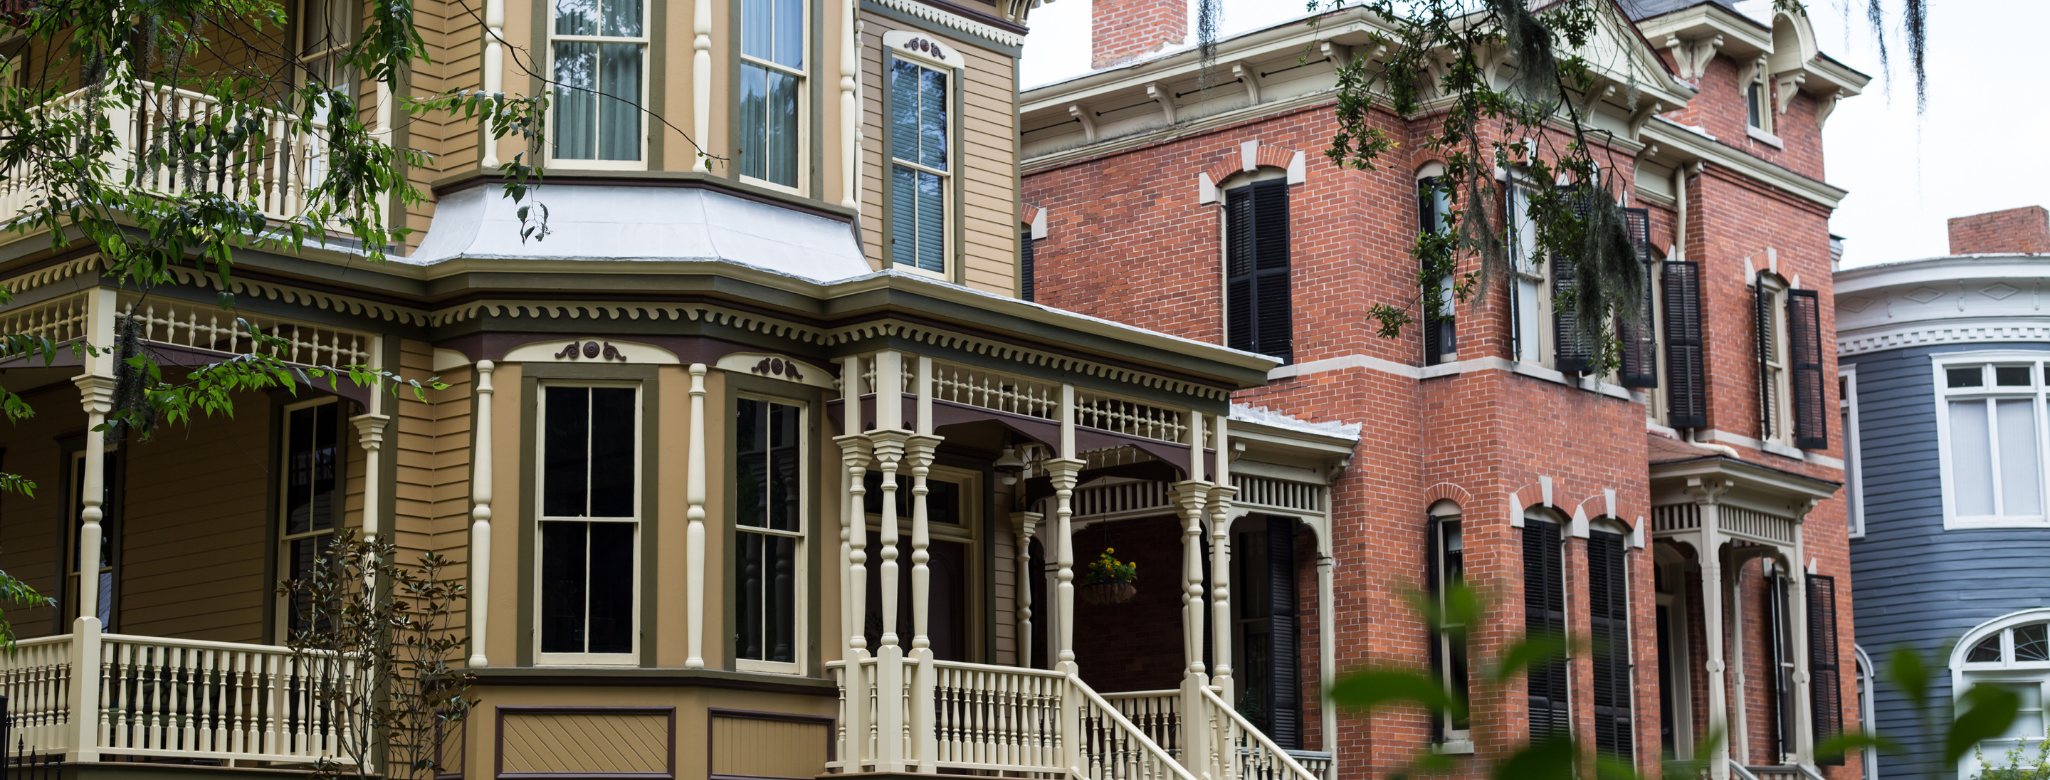 What to Consider When Buying a New Furnace for Your Historic Home